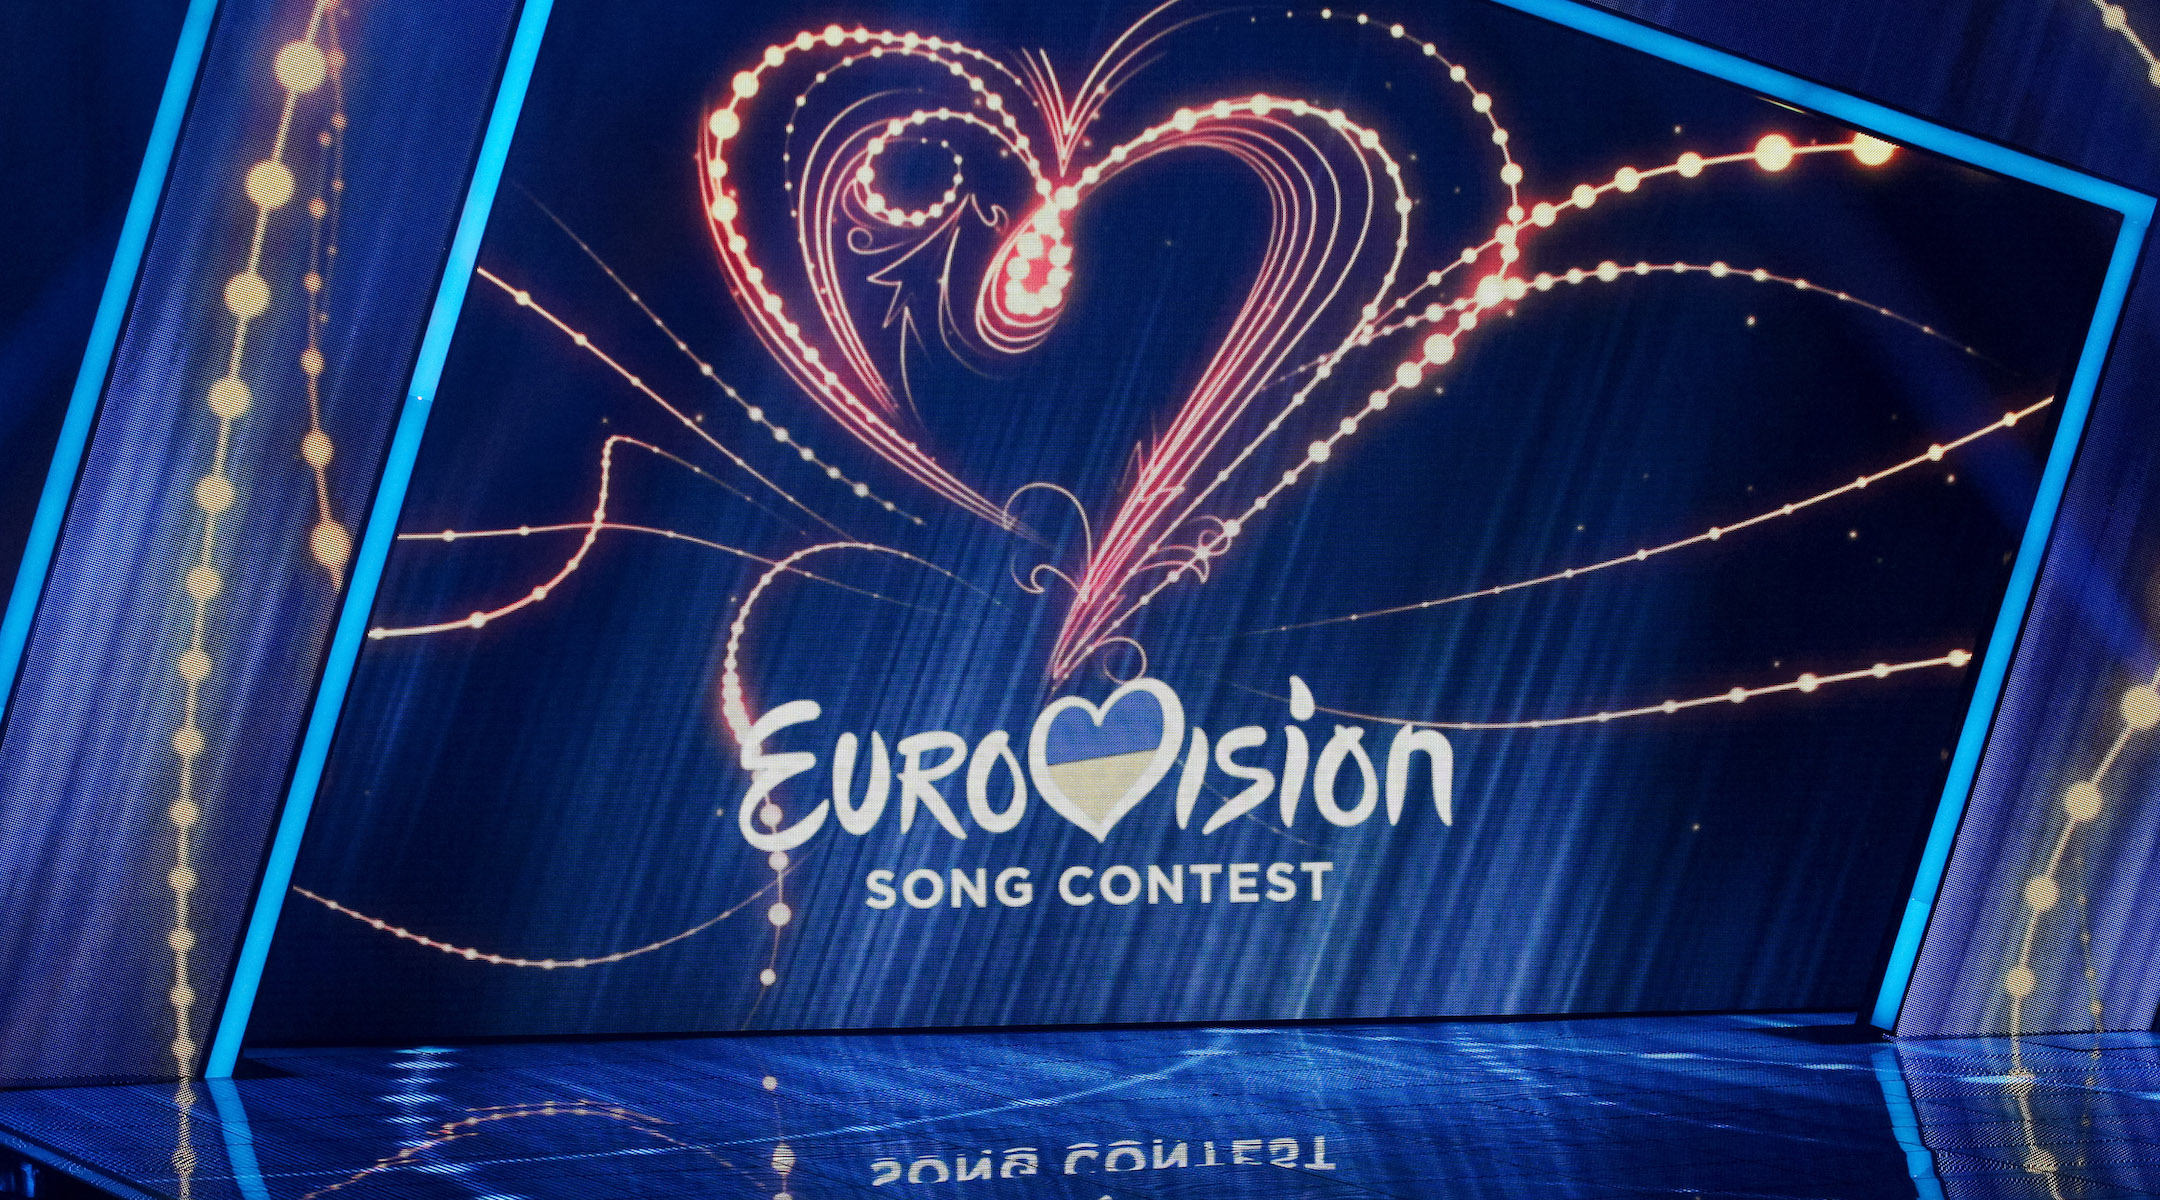 Eurovision 2019: What the song contest is all about, and why it's being held in Israel - Jewish ...